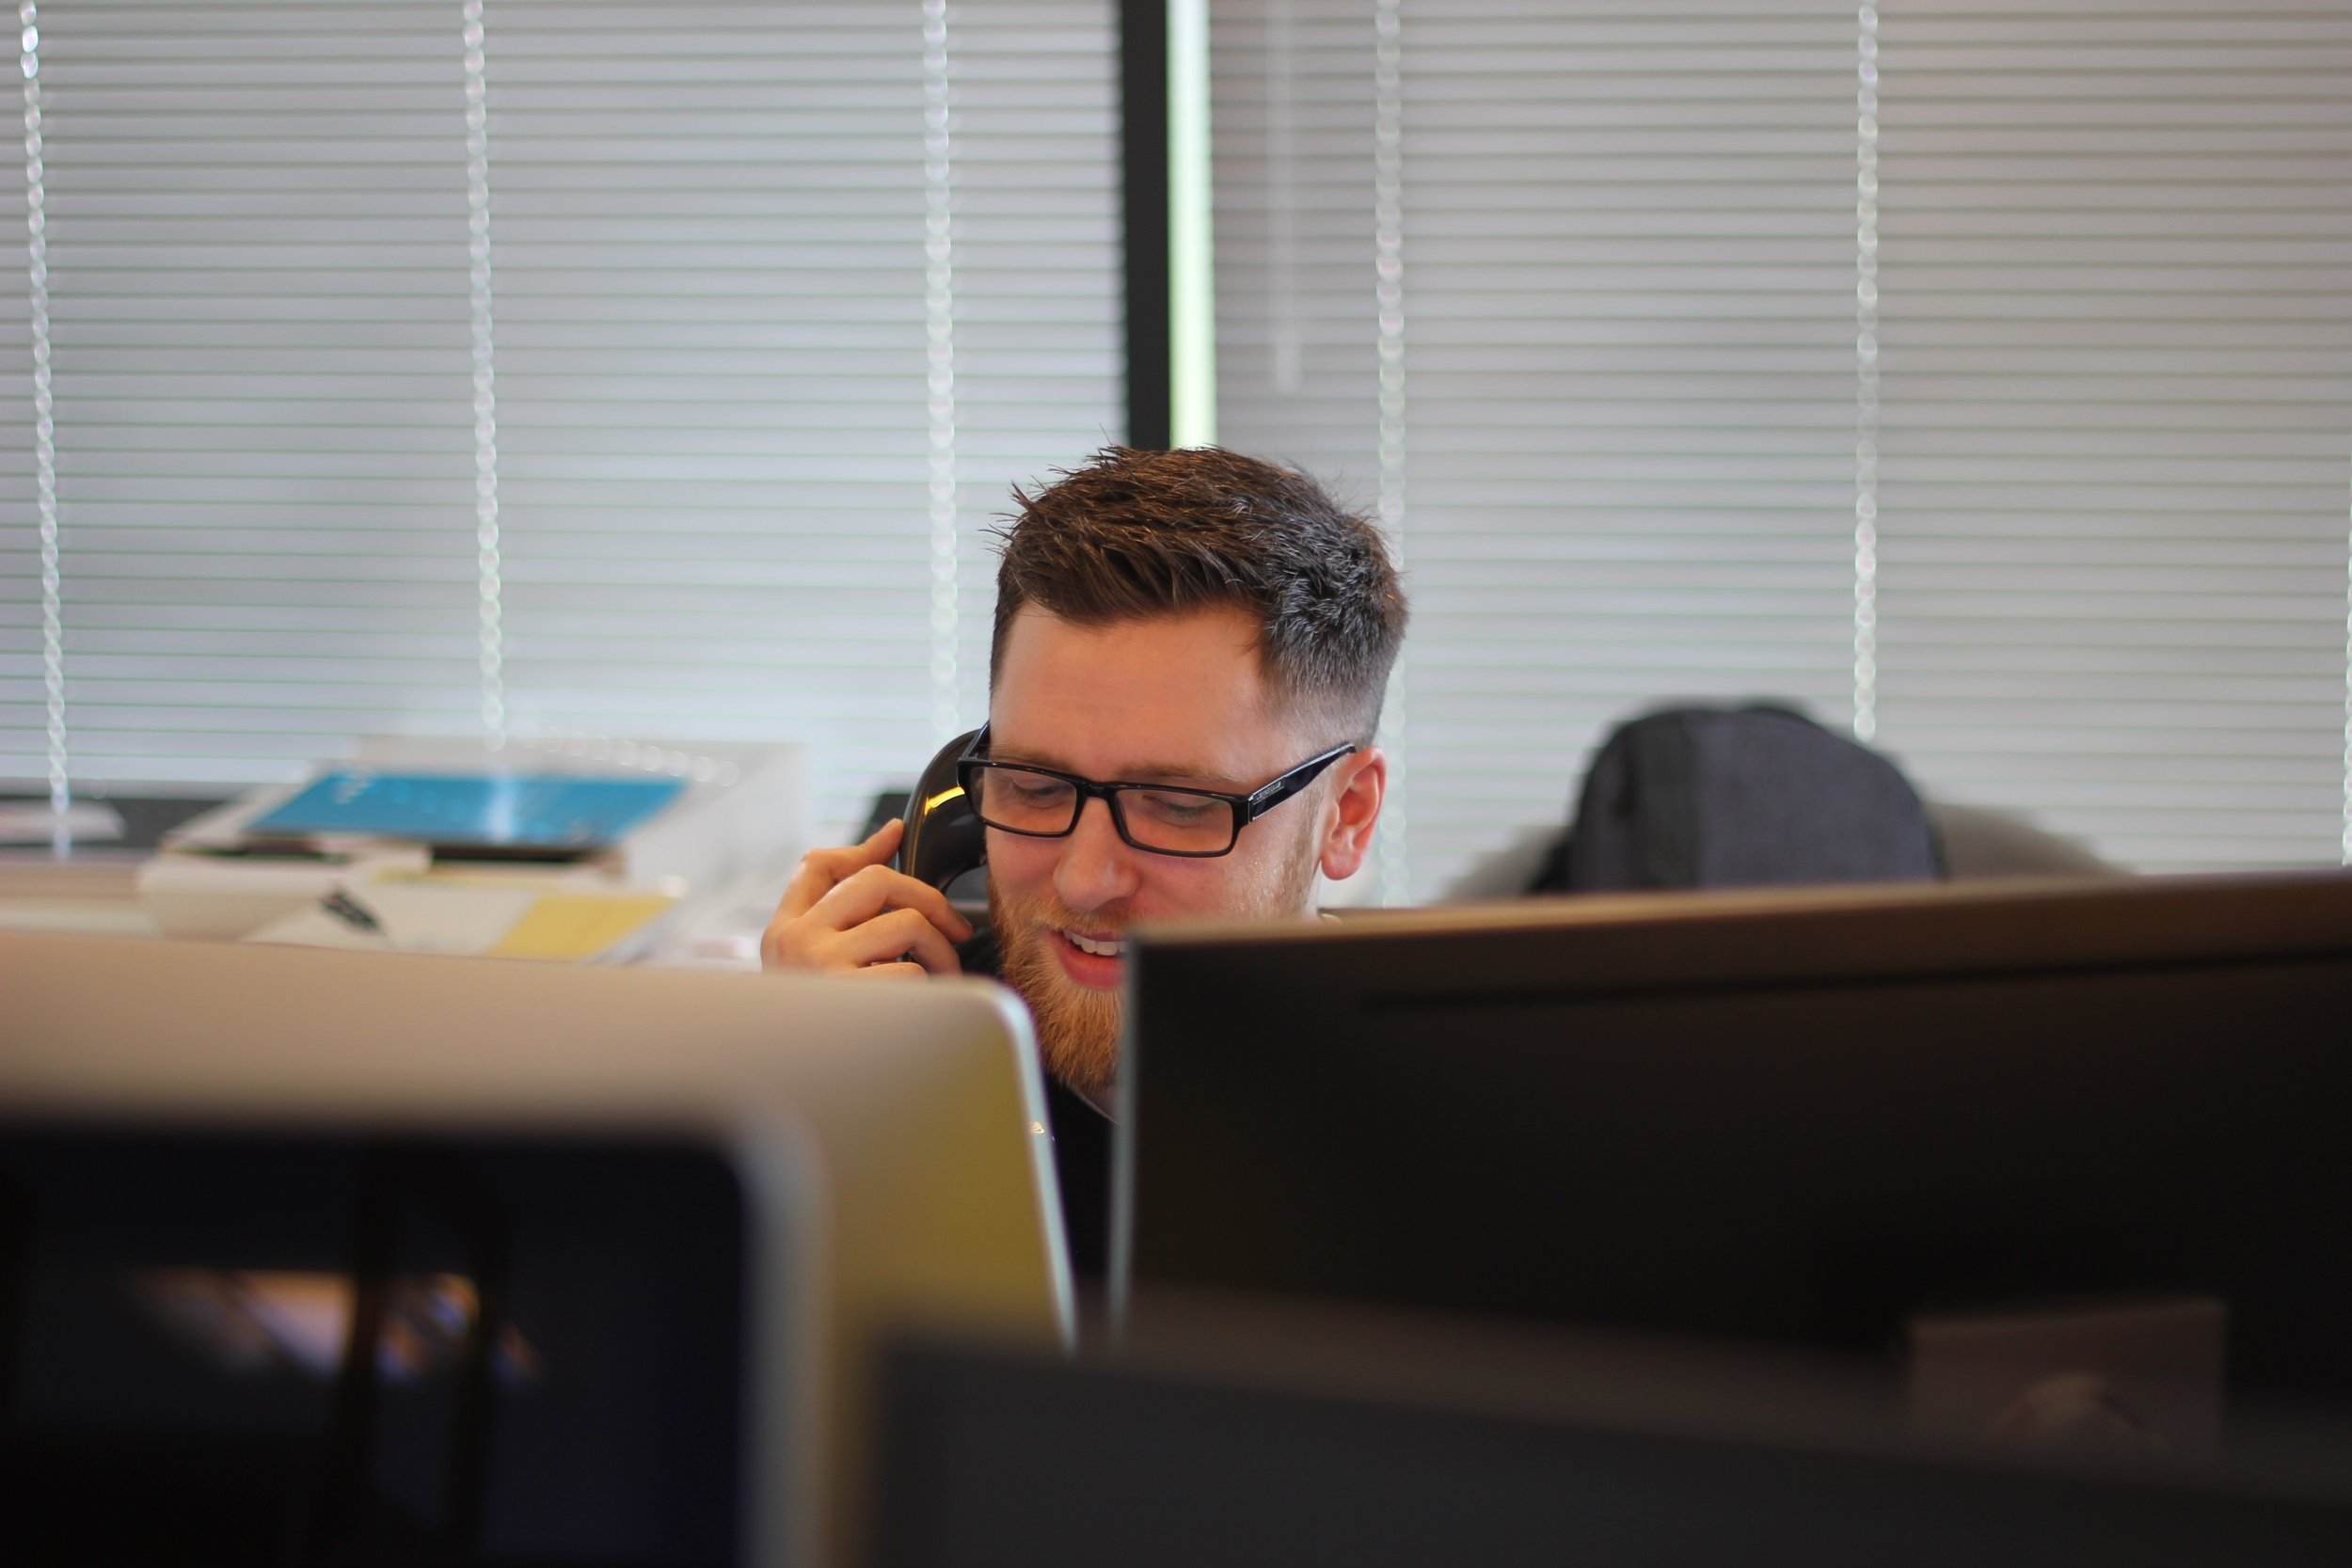 New Guidance on Protecting VoIP from Hackers - Are you secure and compliant? Let's find out.